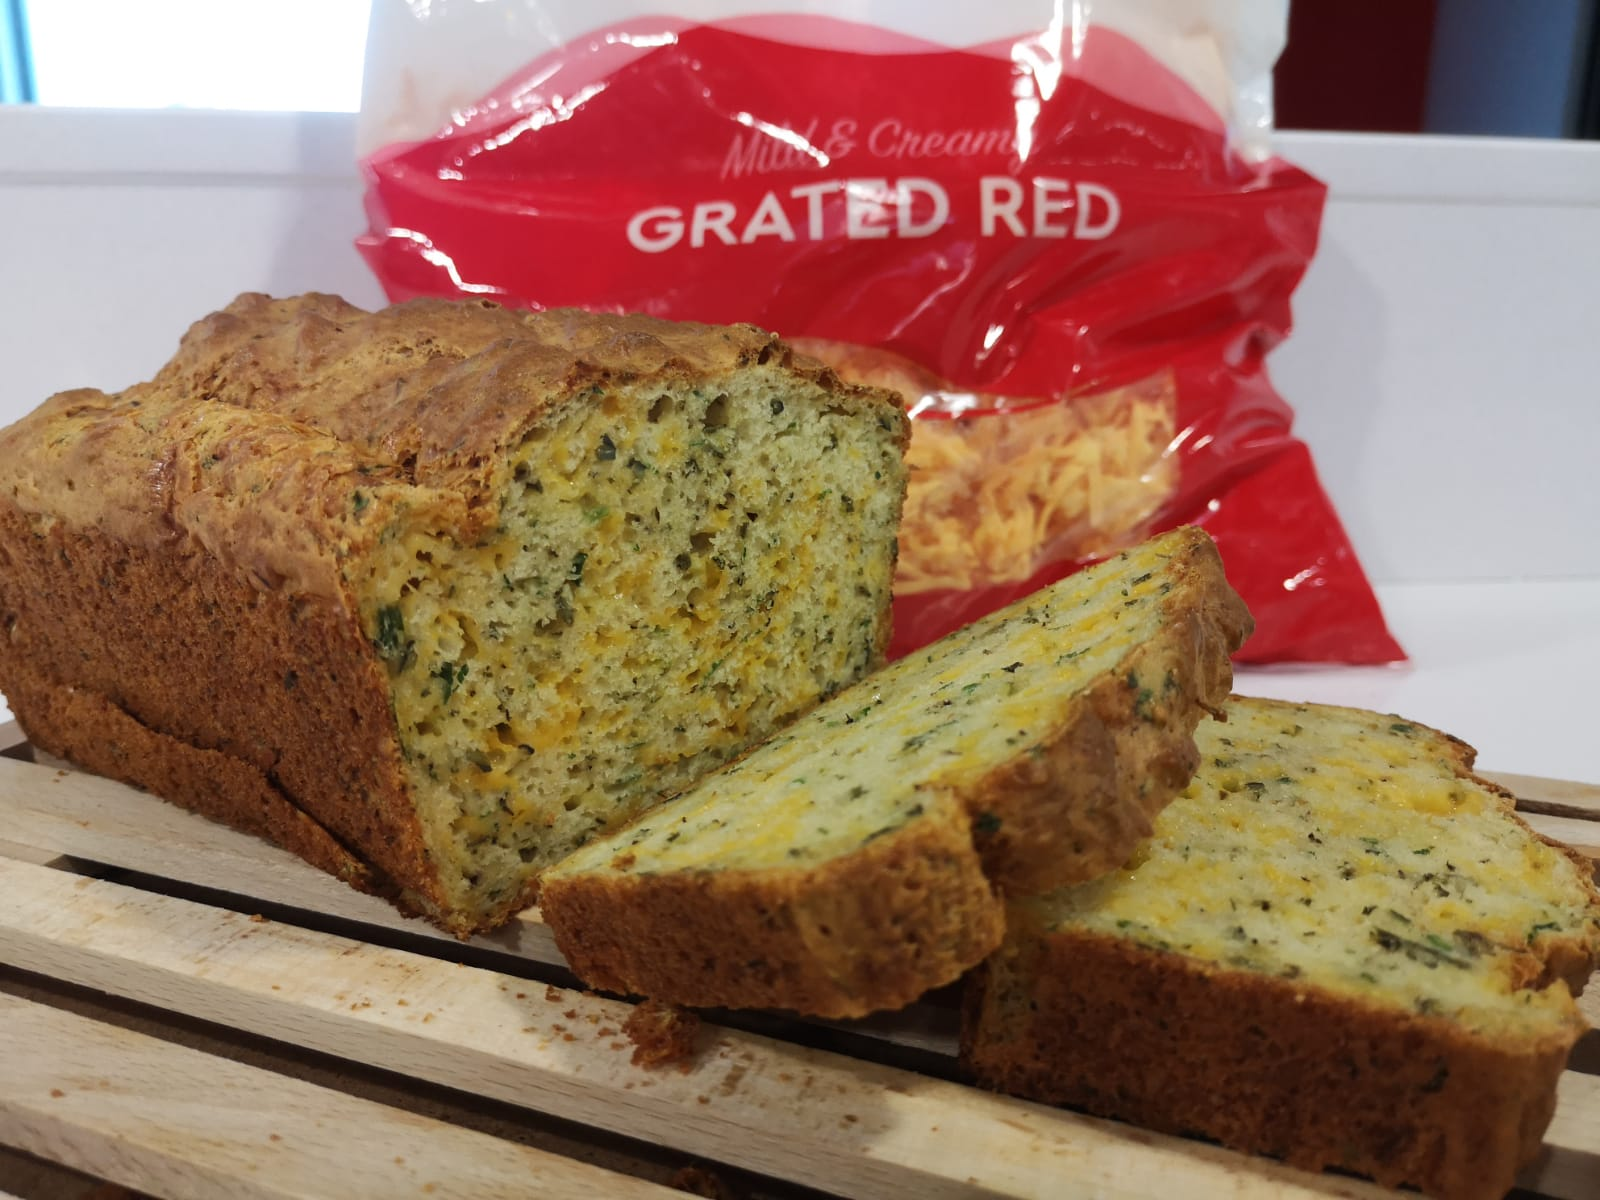 Kerrymaid Grated Red Cheesy Loaf